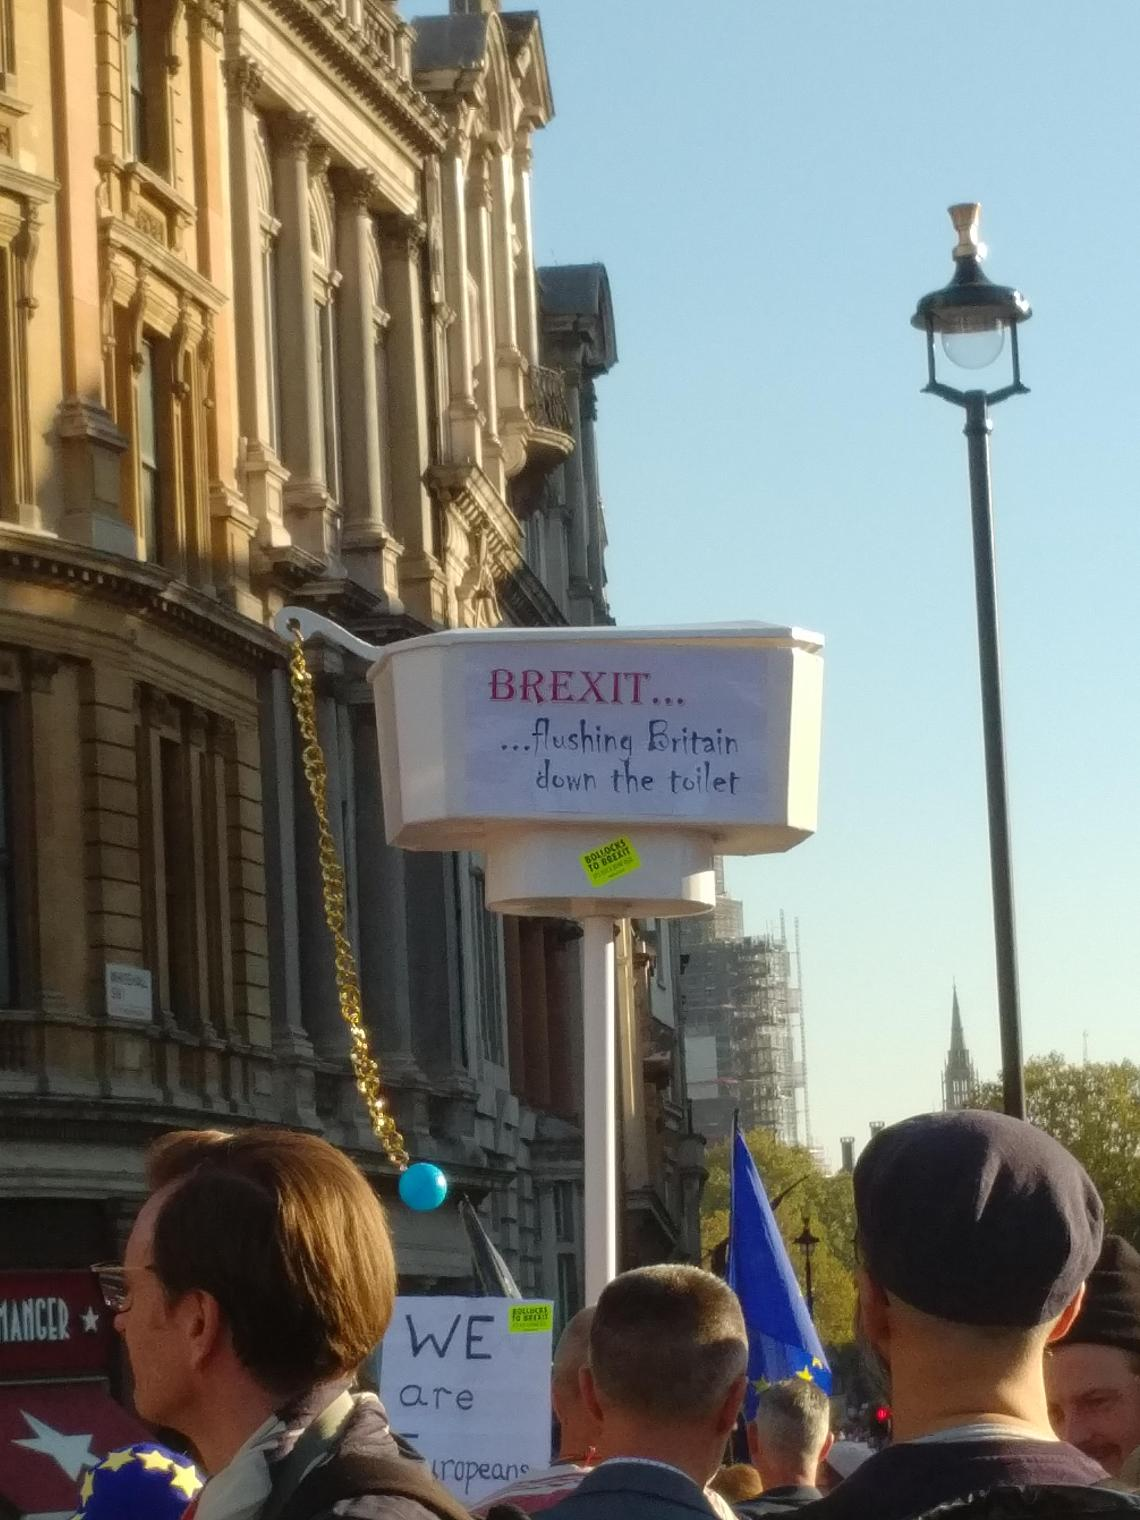 A street scene from the People's Vote March in London, 20th October 2018. A protester carries a toilet cistern aloft, complete with pull chain. The cistern reads 'Brexit... Flushing Britain down the toilet'. It is seen against a blue sky and tall, honey-coloured buildings on the left. A street lantern cuts into the blue of the sky on the right side of the image. The backs of the heads of several people are in the bottom of the photo.